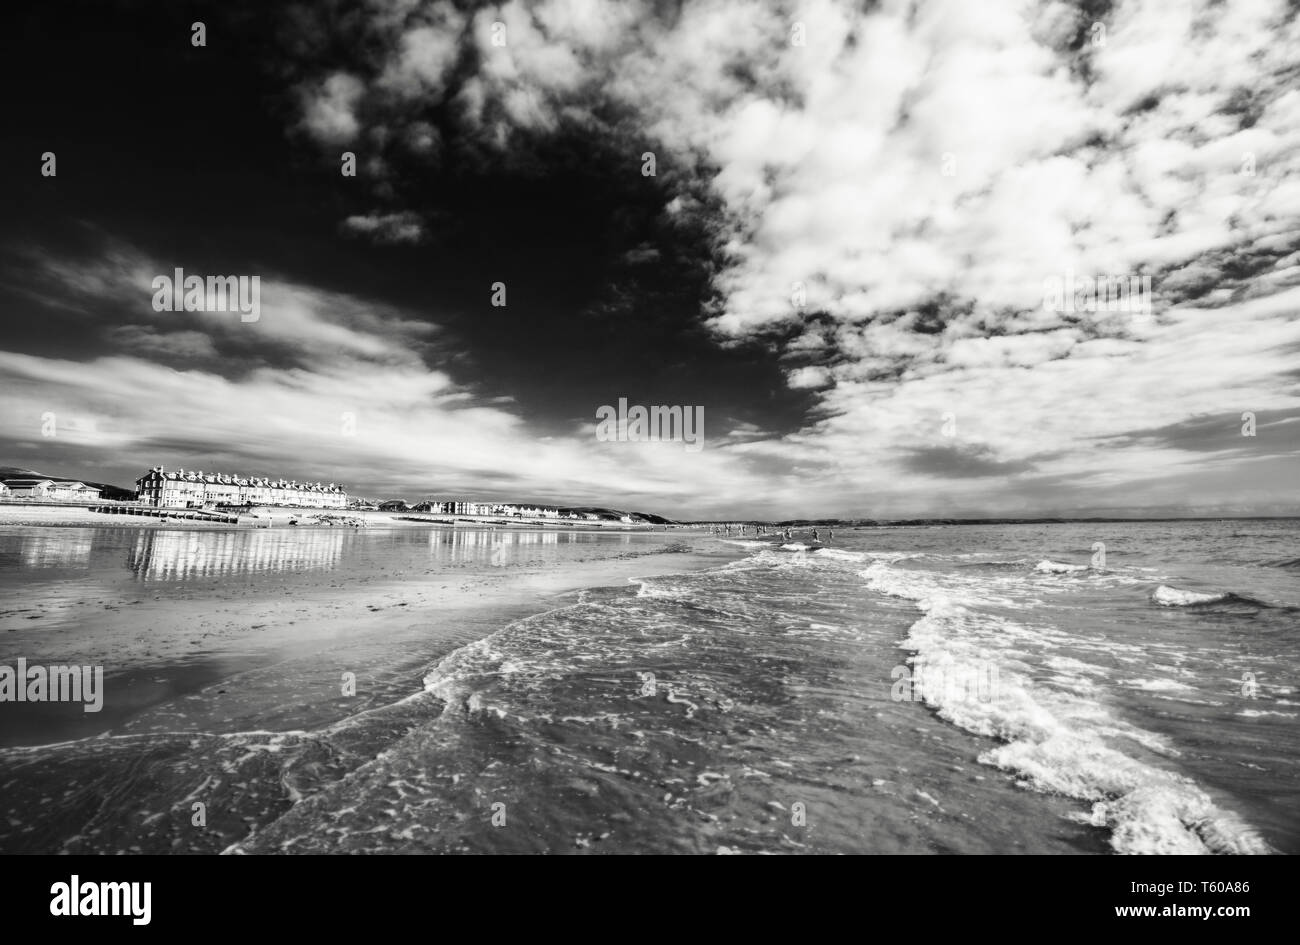 Sea waves washing onto scenic beach at bright summer day. Tywyn in Mid Wales, United Kingdom. Monochrome edit - Stock Image